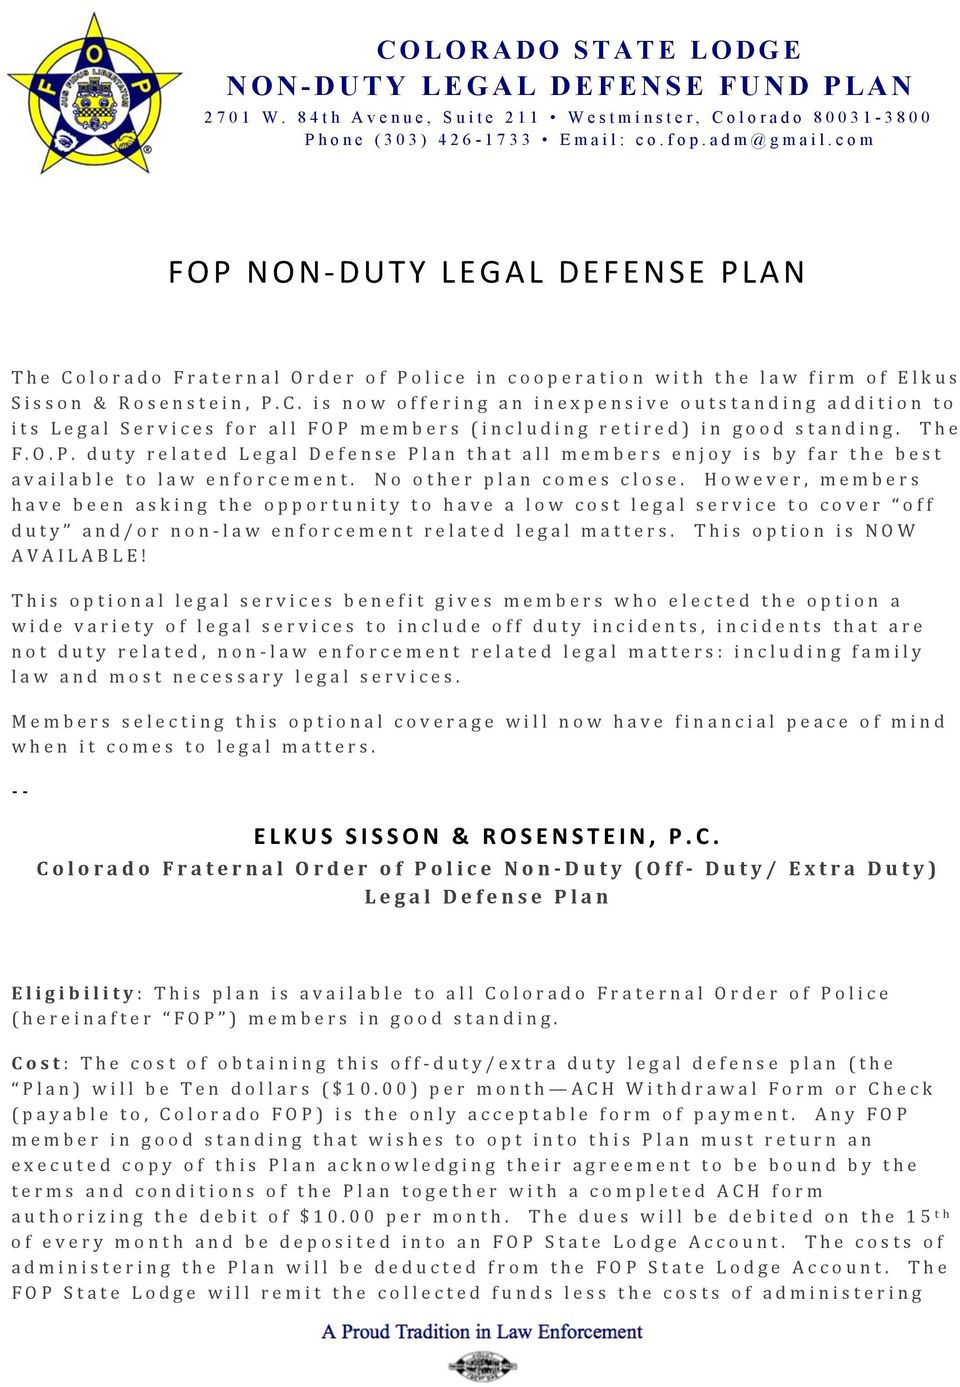 The F.O.P. duty related Legal Defense Plan that all members enjoy is by far the best available to law enforcement. No other plan comes close.